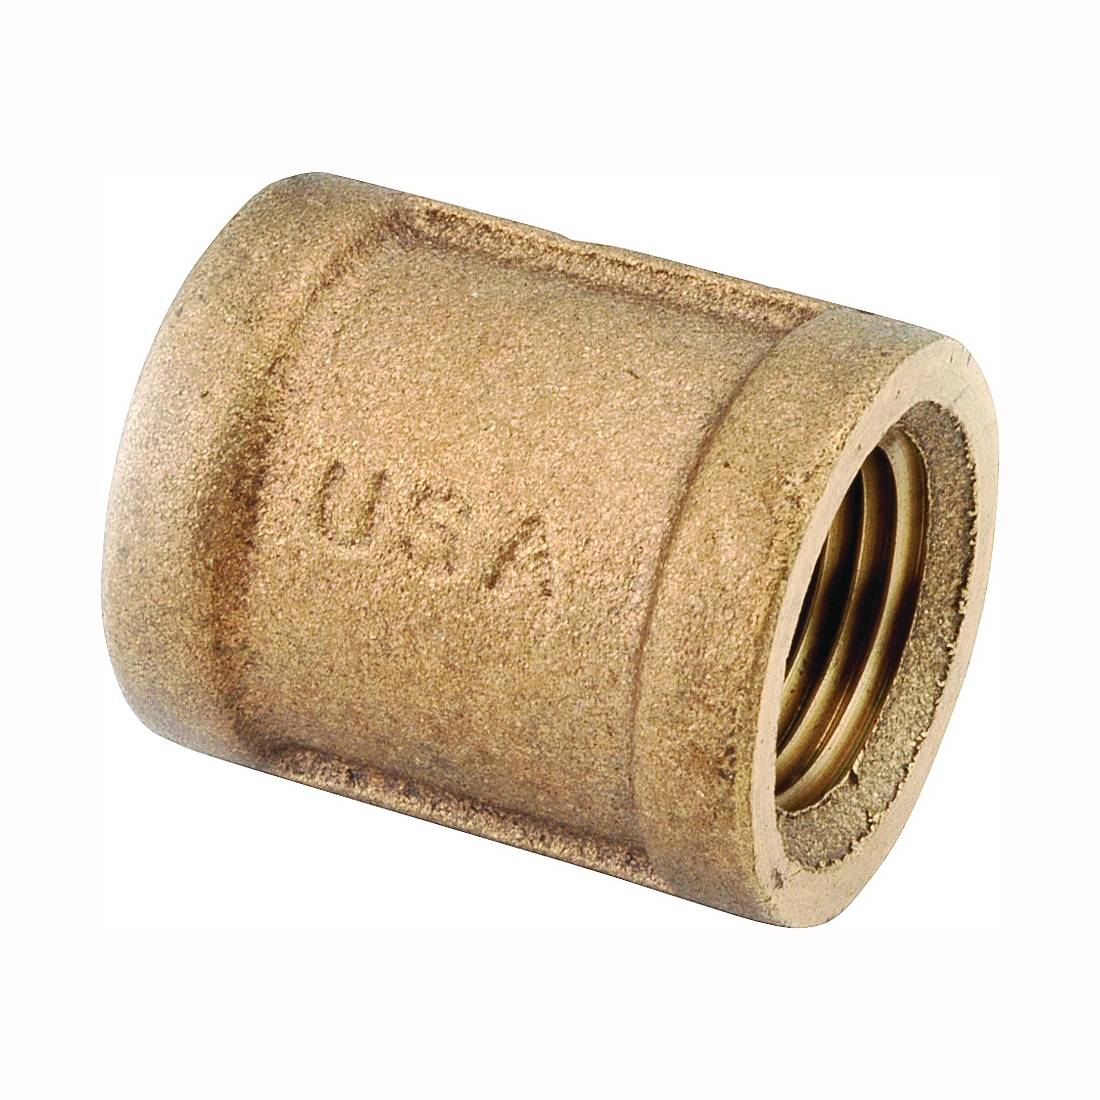 Picture of Anderson Metals 738103-08 Coupling, 1/2 in, FIPT, Brass